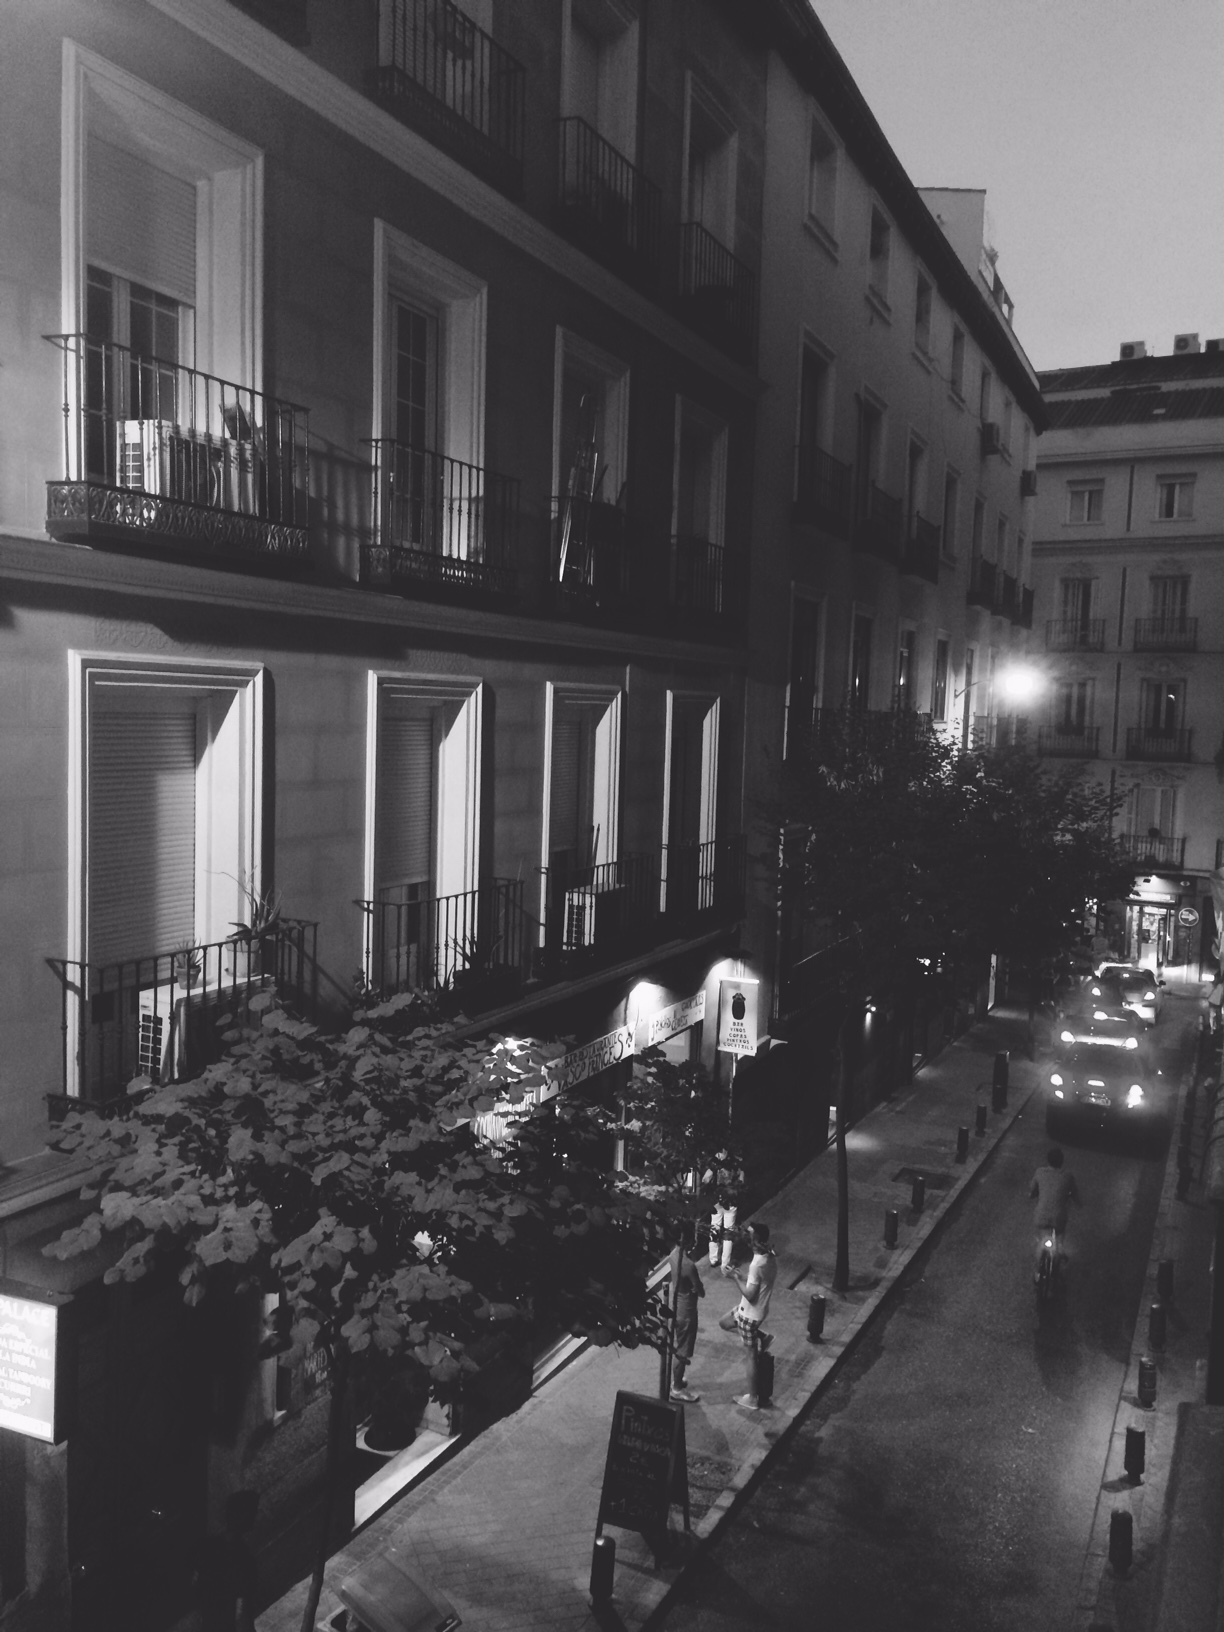 Viewed from Mike Foster's balcony in Madrid